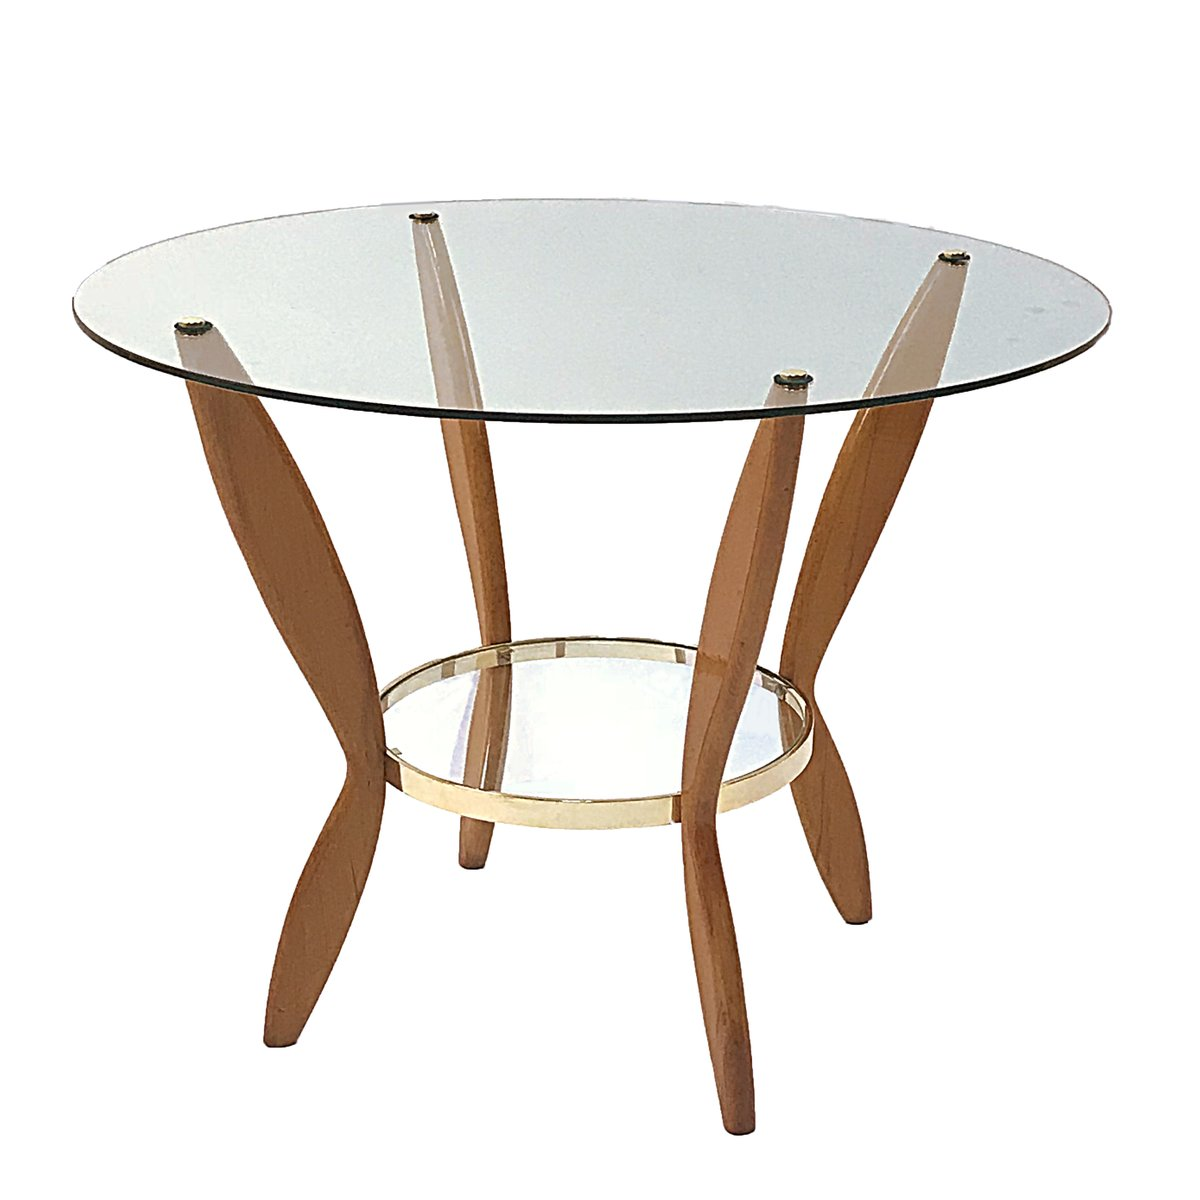 Italian Beech, Brass & Glass Coffee Table, 1950s For Sale